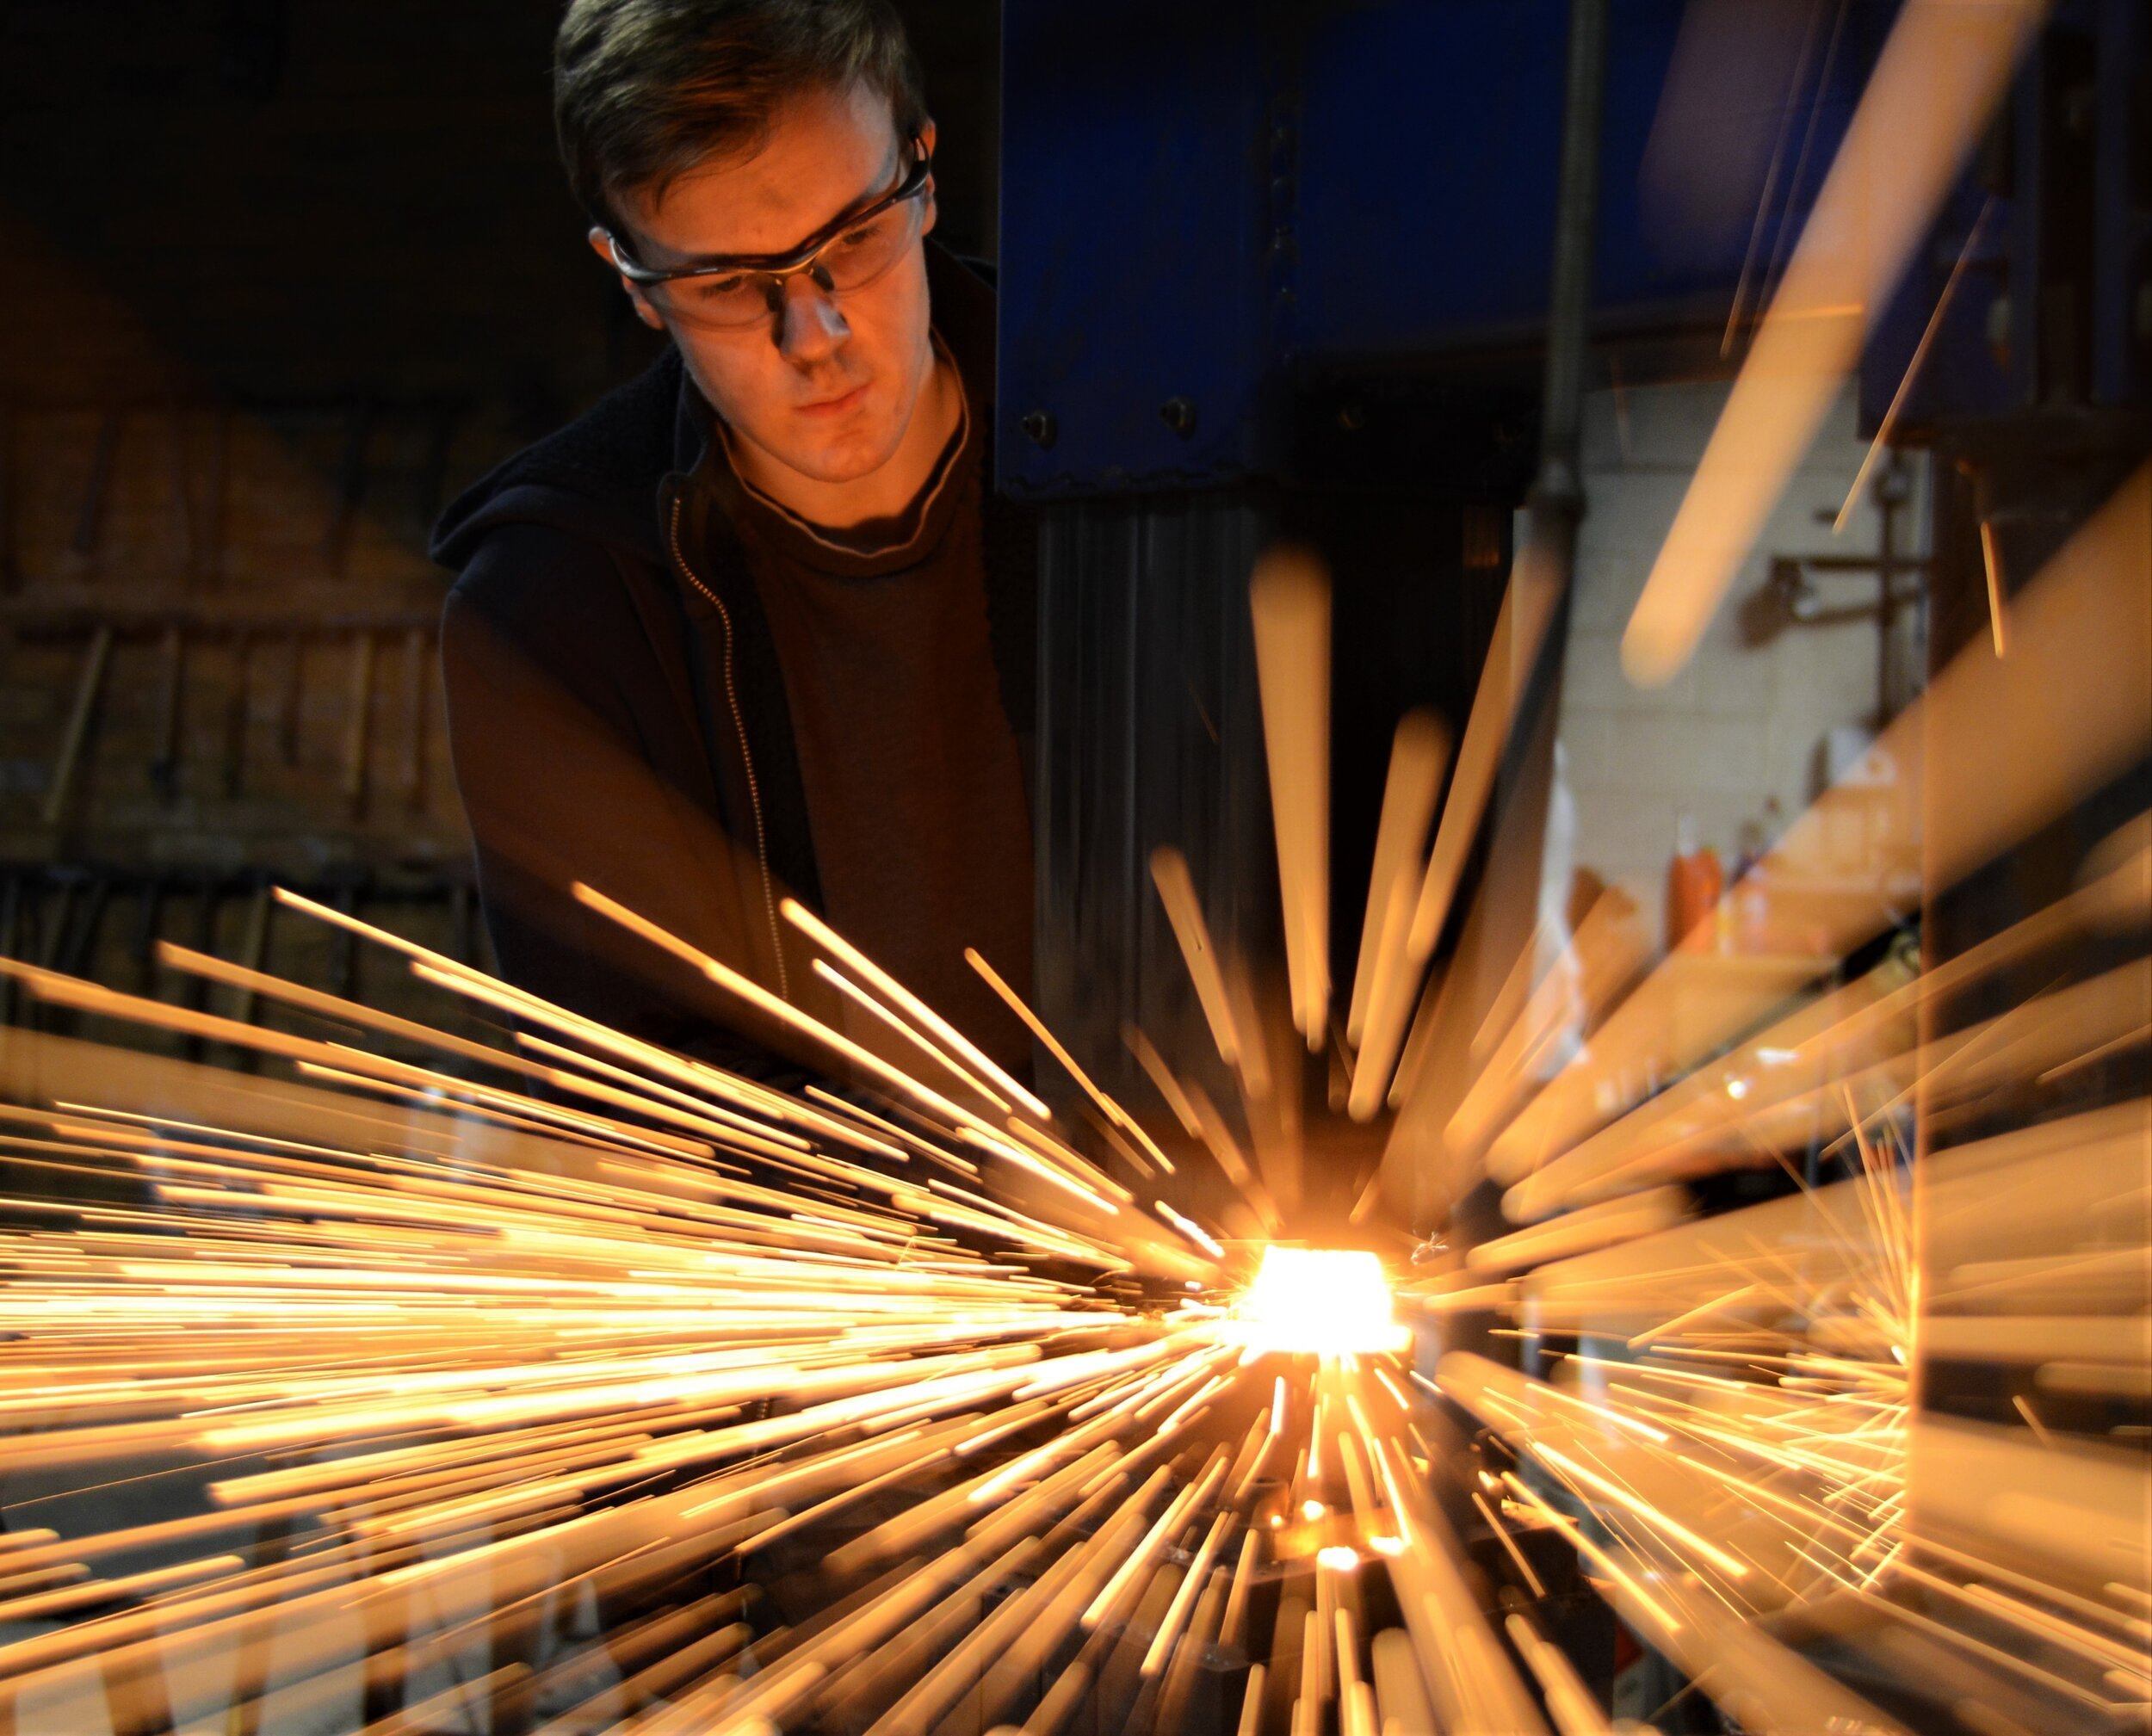 Alex - Guest tutor - Alex is a very competent young blacksmith that has an excellent grasp on all the technical aspects of metalwork and is keen to share his knowledge. He is also a keen photographer and took most of the photos you see on our website, including the ones of himself!